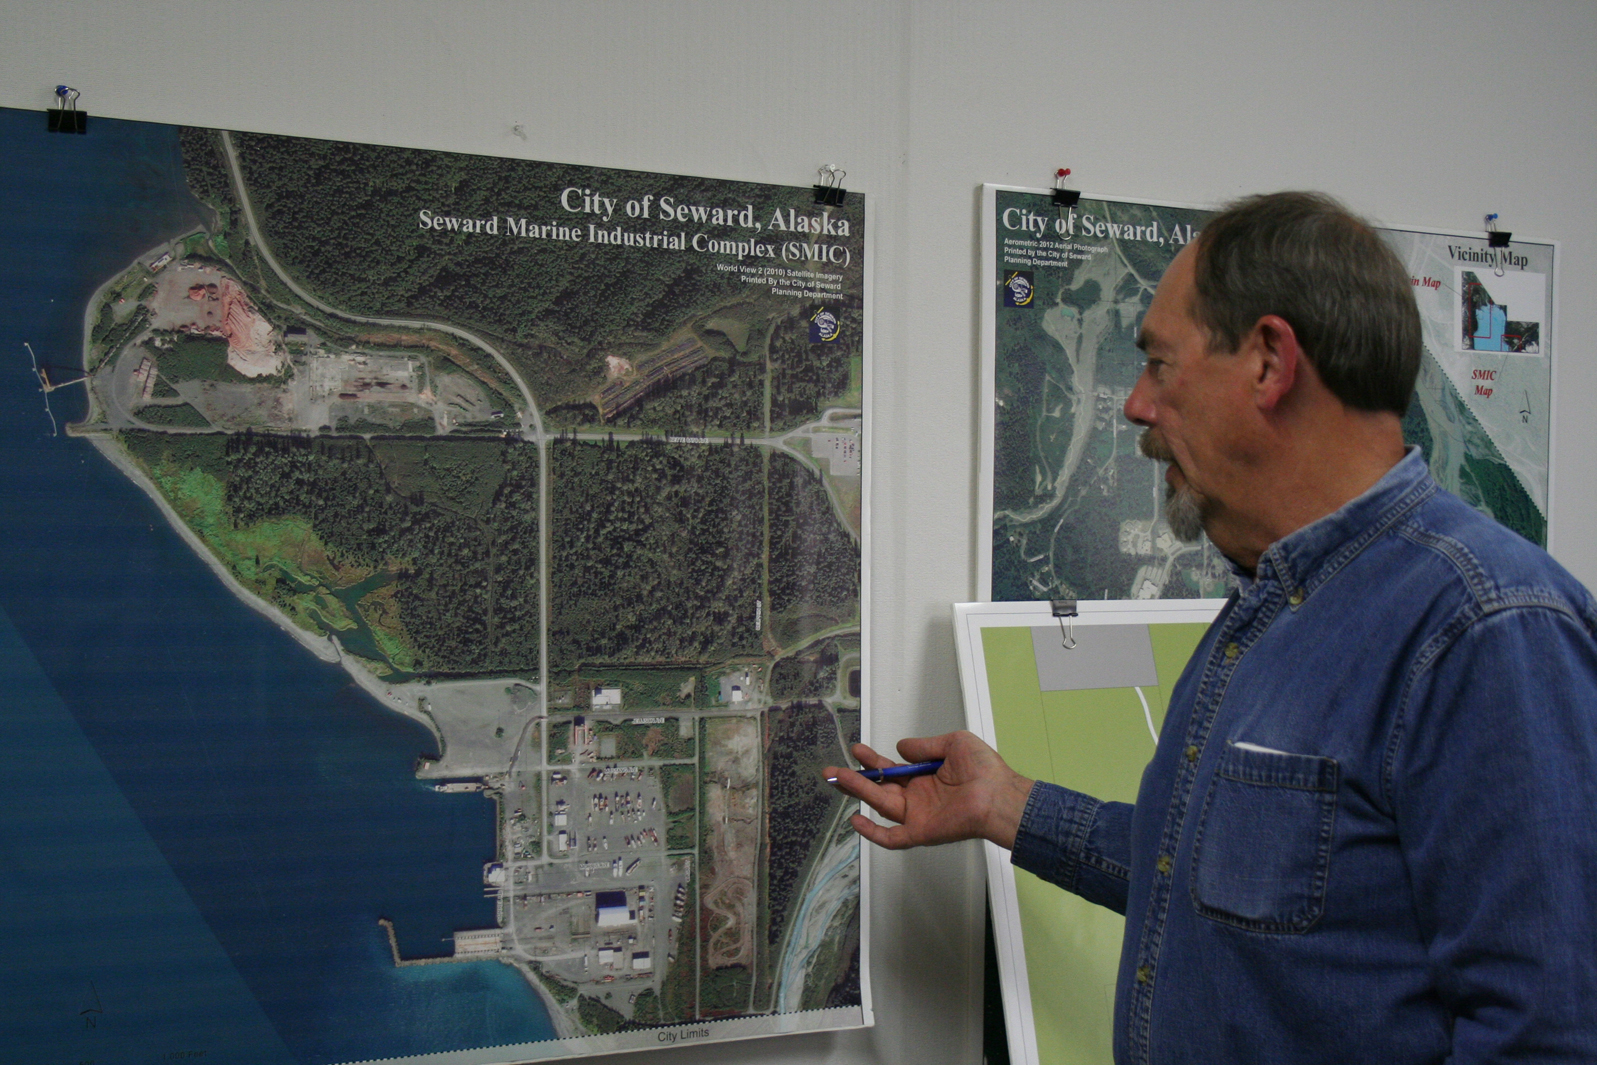 Seward Community Development Director Ron Long discusses the city's plans for the Seward Marine Industrial Center across Resurrection Bay from its population center in front of a photo of the shipyard and surrounding area.